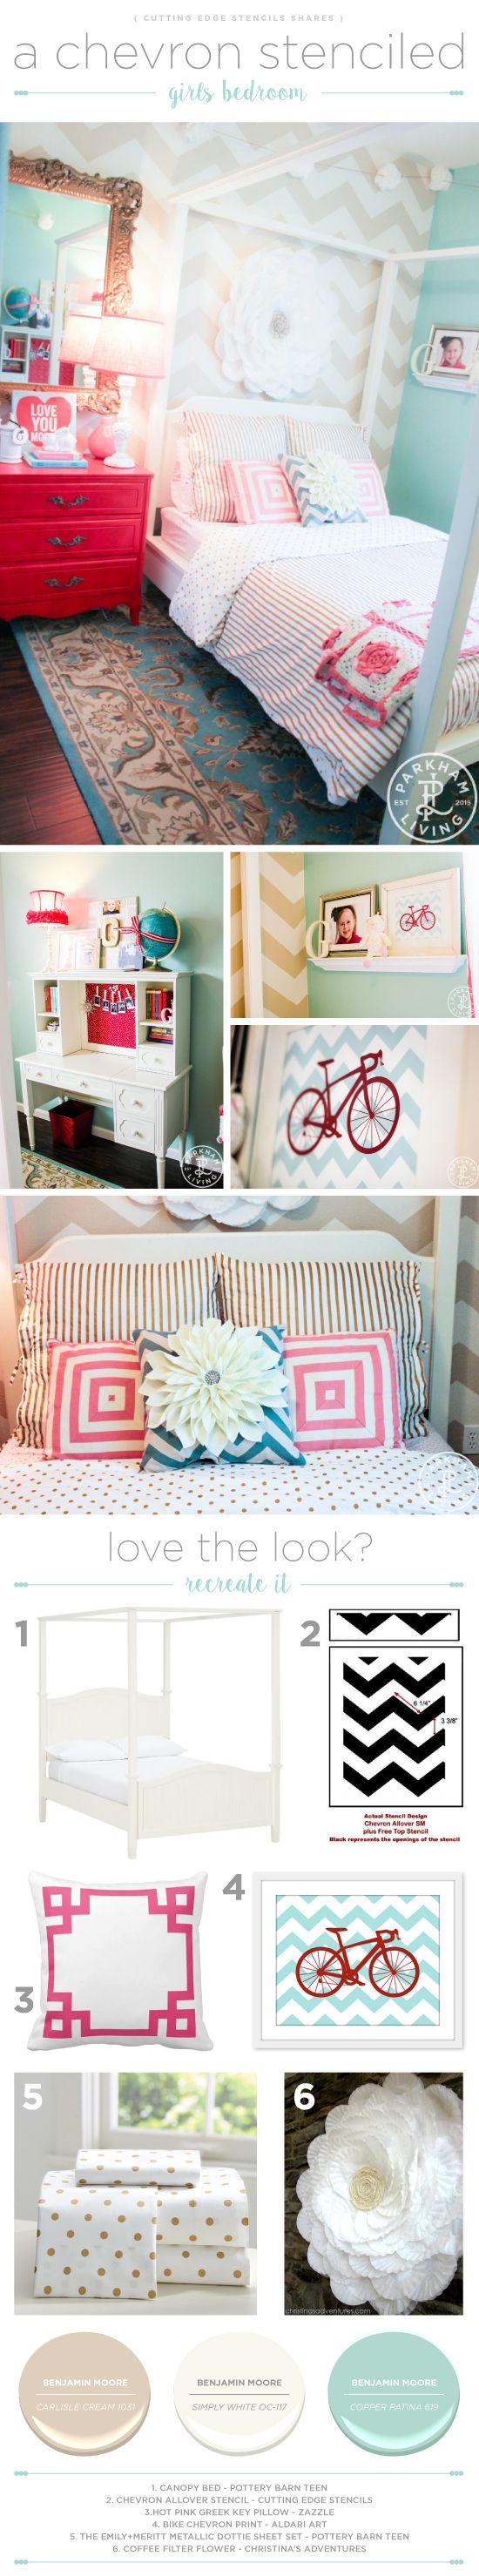 112 best stenciled bedrooms images on pinterest wall stenciling cutting edge stencils shares a diy girls stenciled bedroom accent wall using the chevron allover stencil